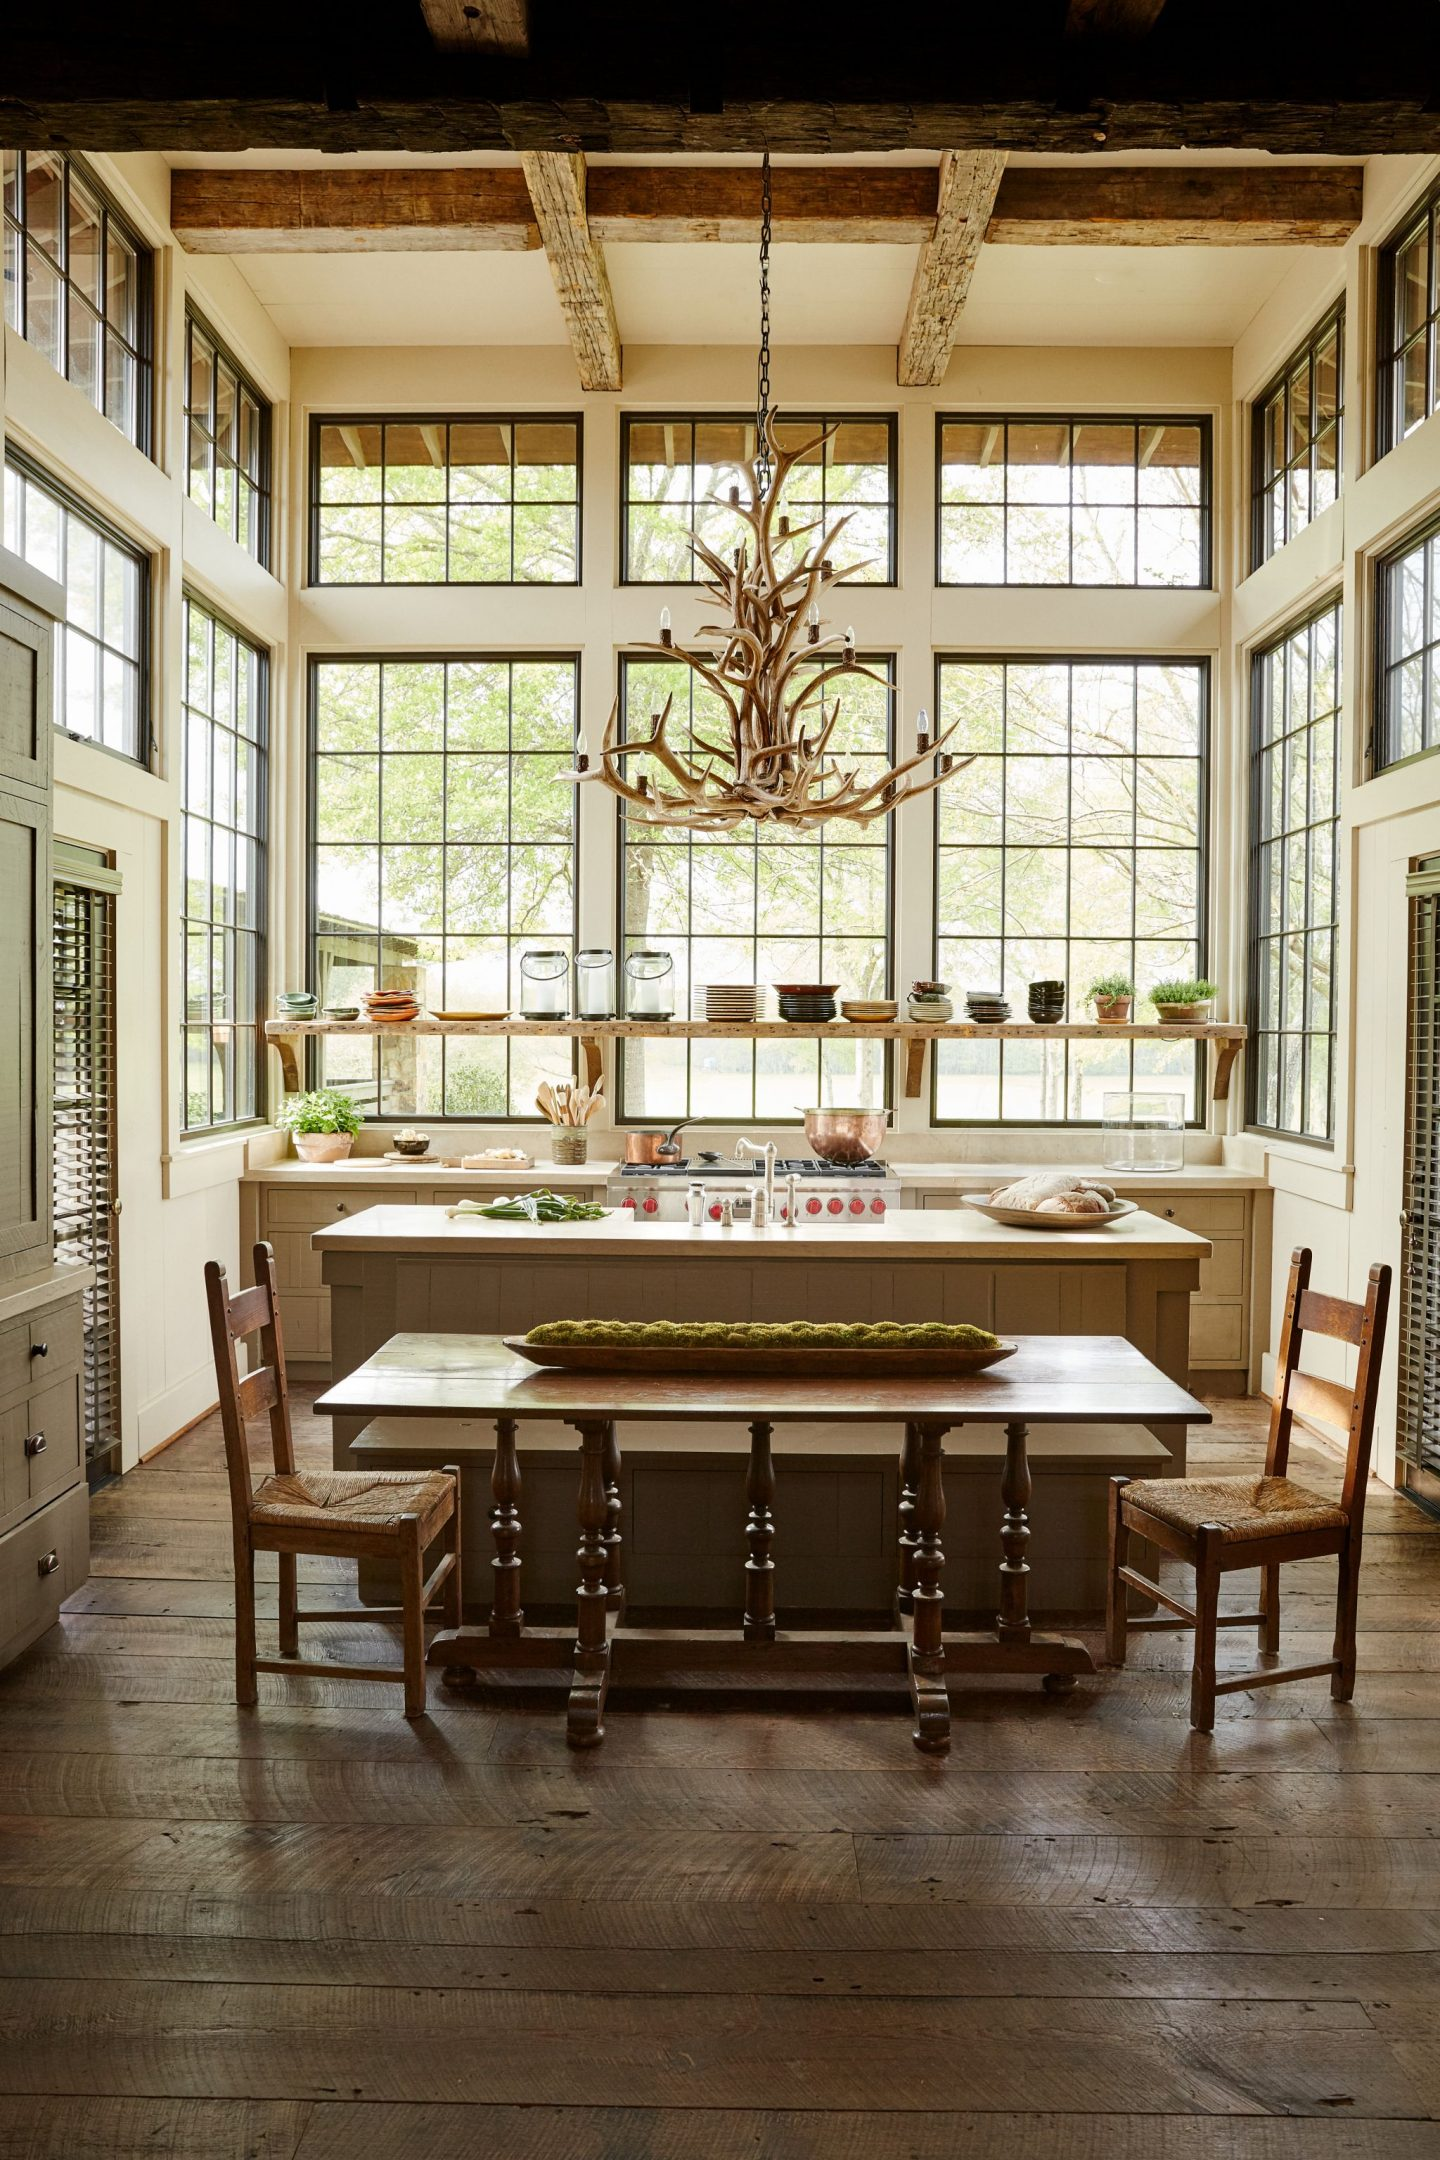 Magnificent walls of windows in a breathtaking rustic luxe kitchen designed by architect Jeffrey Dungan!